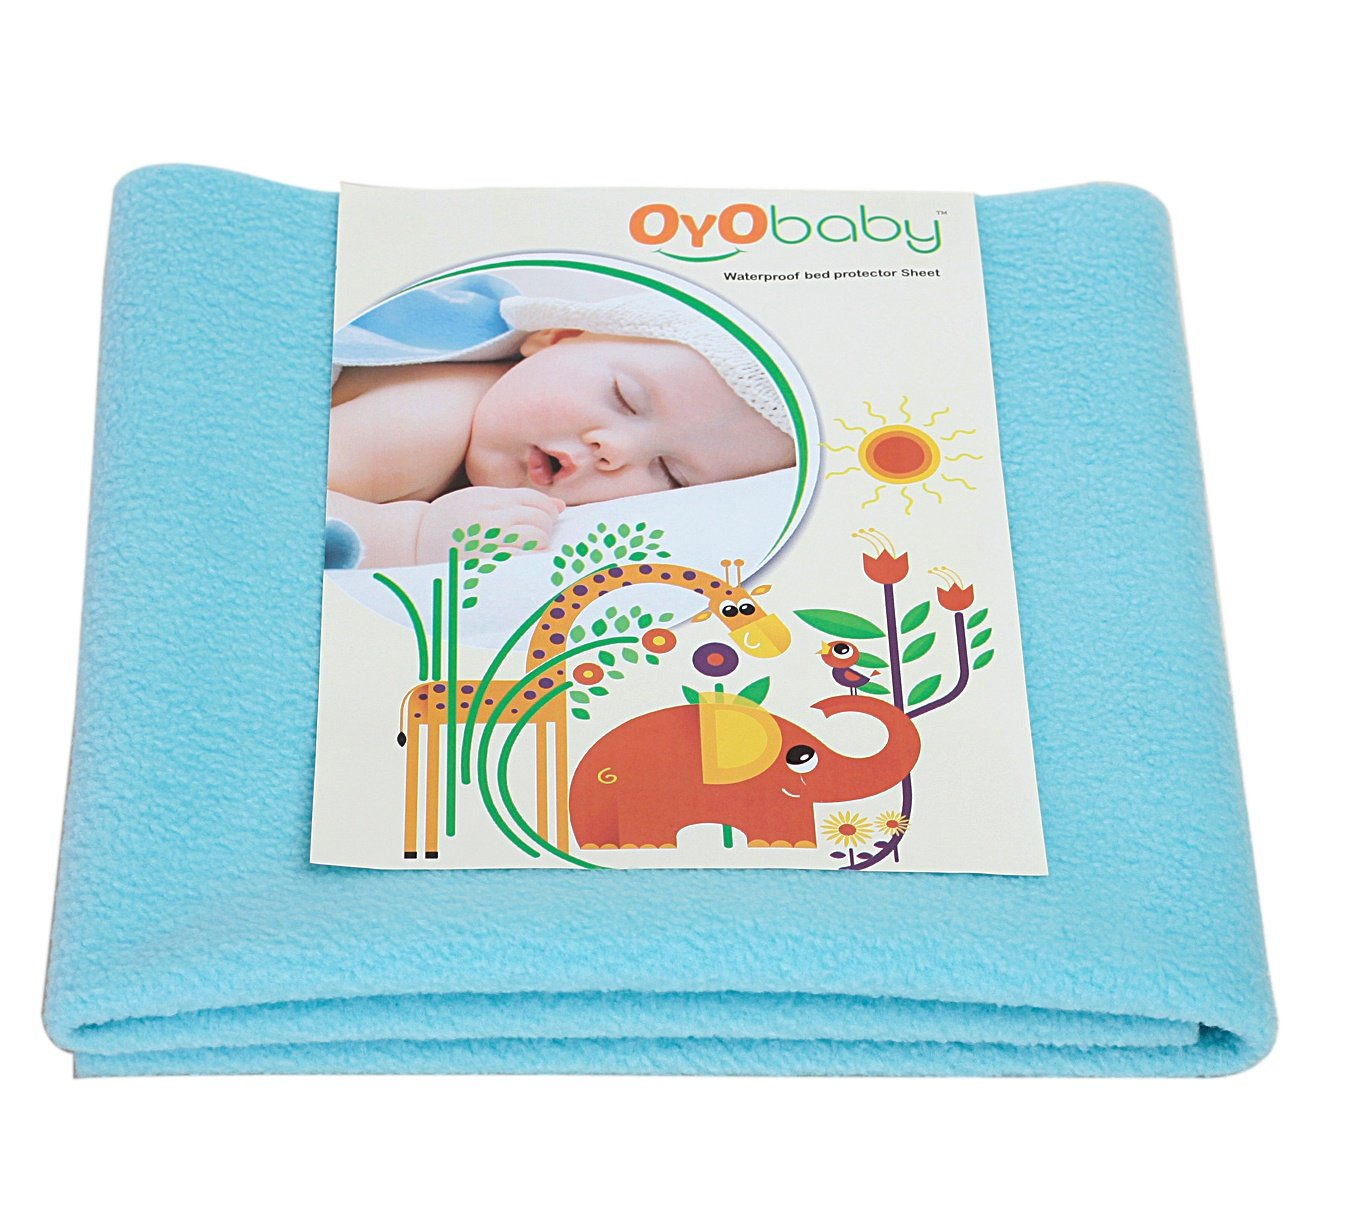 OYO BABY - Water Proof and Reusable Mat/Bed Protector/Absorbent Dry Sheets (70cm X 50cm, Small) - Sea Blue product image